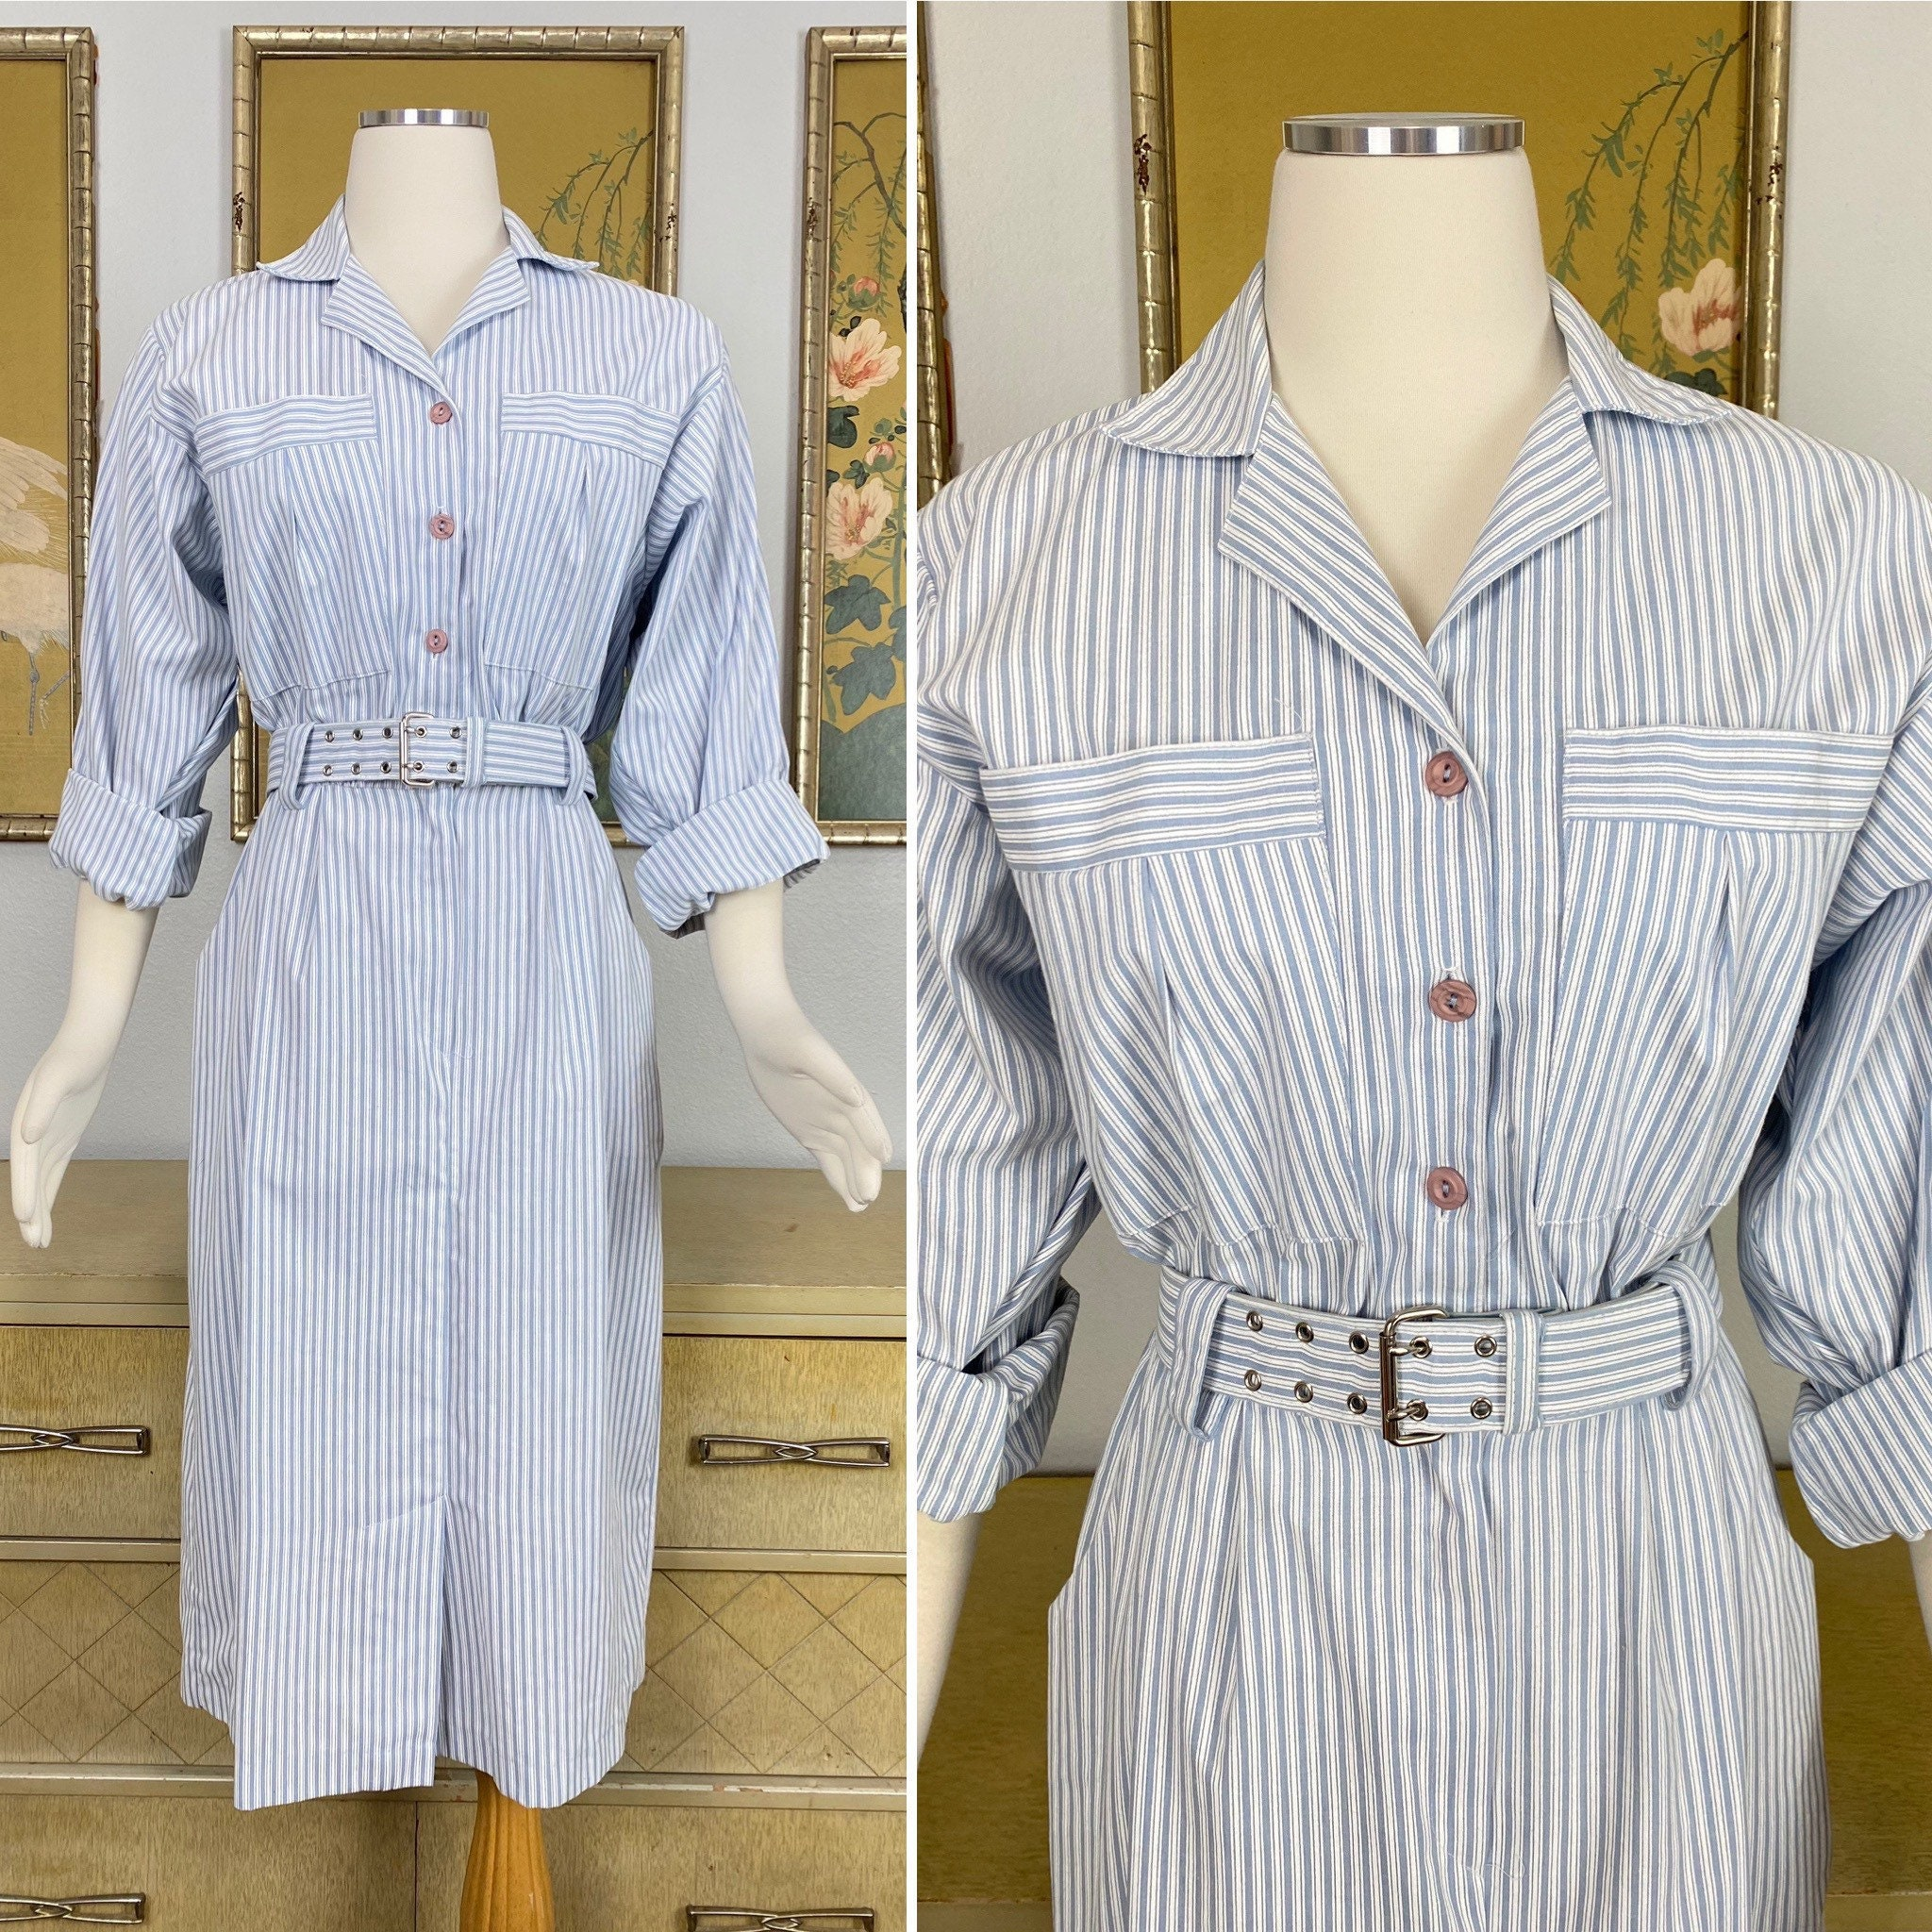 80s Dresses | Casual to Party Dresses 1980S Vintage Blue  White Striped Cotton Shirtdress By Taurus Ii Cool, Crisp With Wonderful Pockets $58.00 AT vintagedancer.com